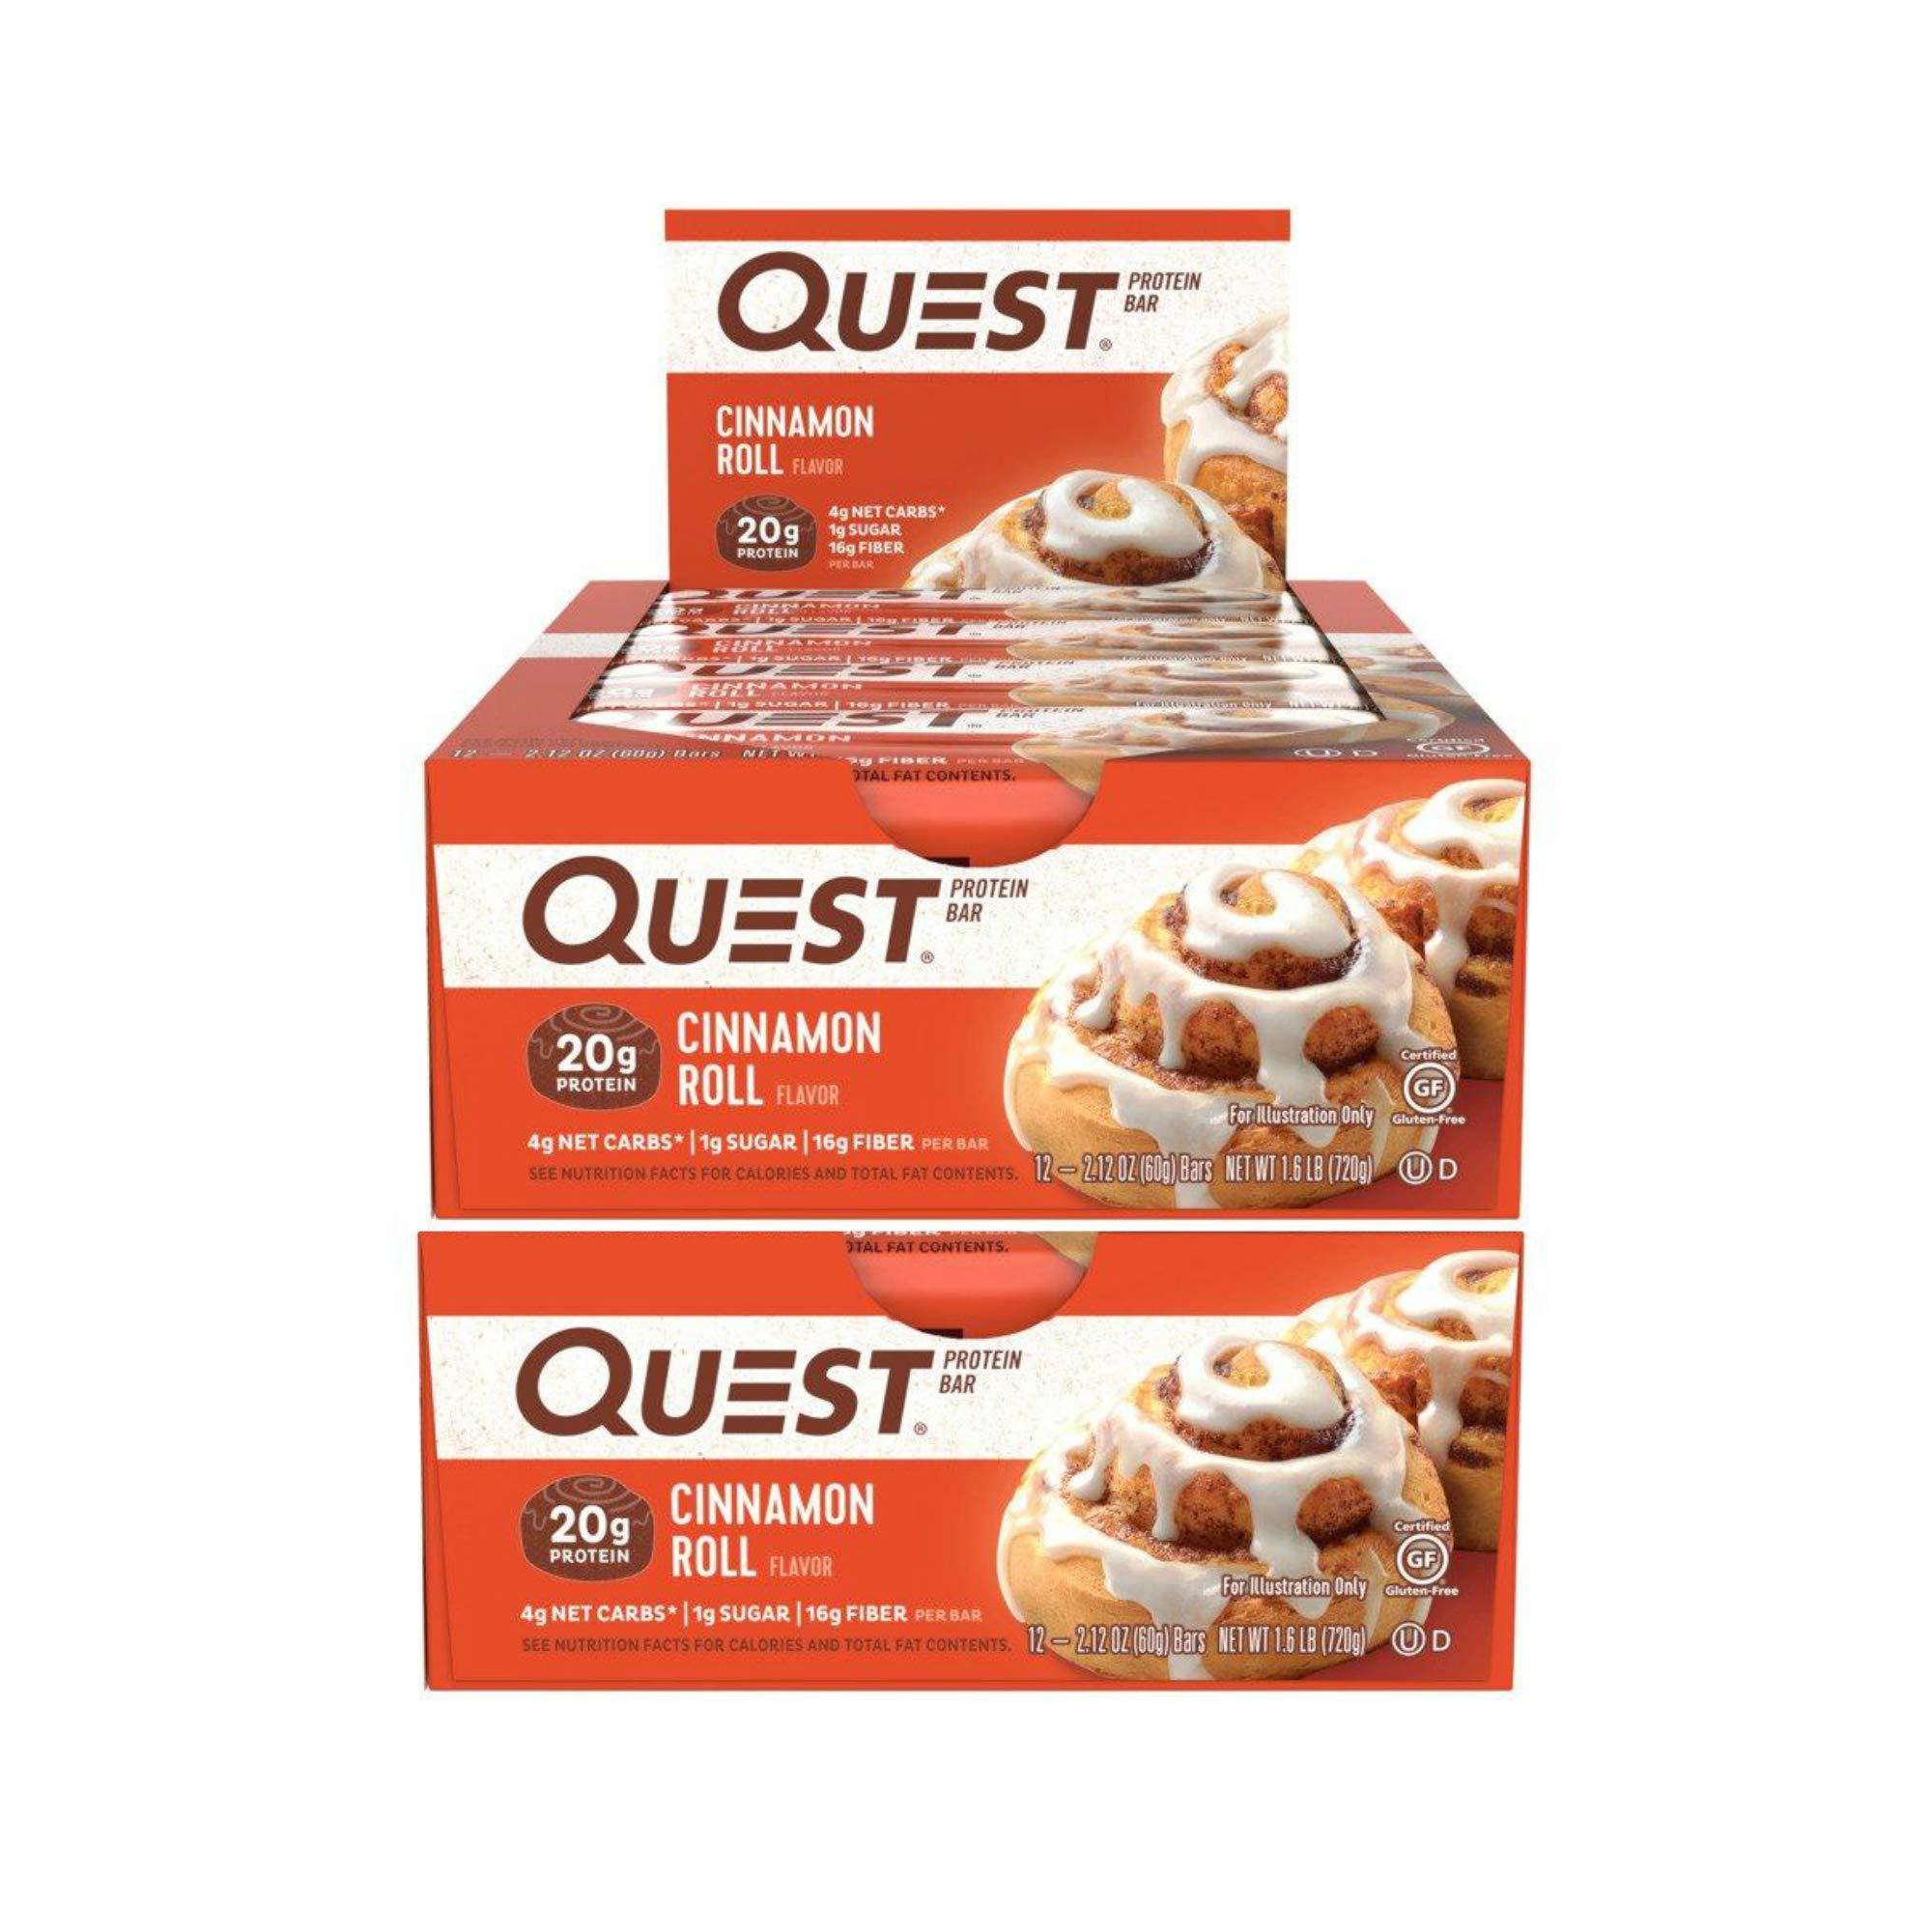 Quest Nutrition Protein Bar Cinnamon Roll. Low Carb Meal Replacement Bar with 20 gram Protein. High Fiber, Gluten-Free (24 Count) by Quest Nutrition